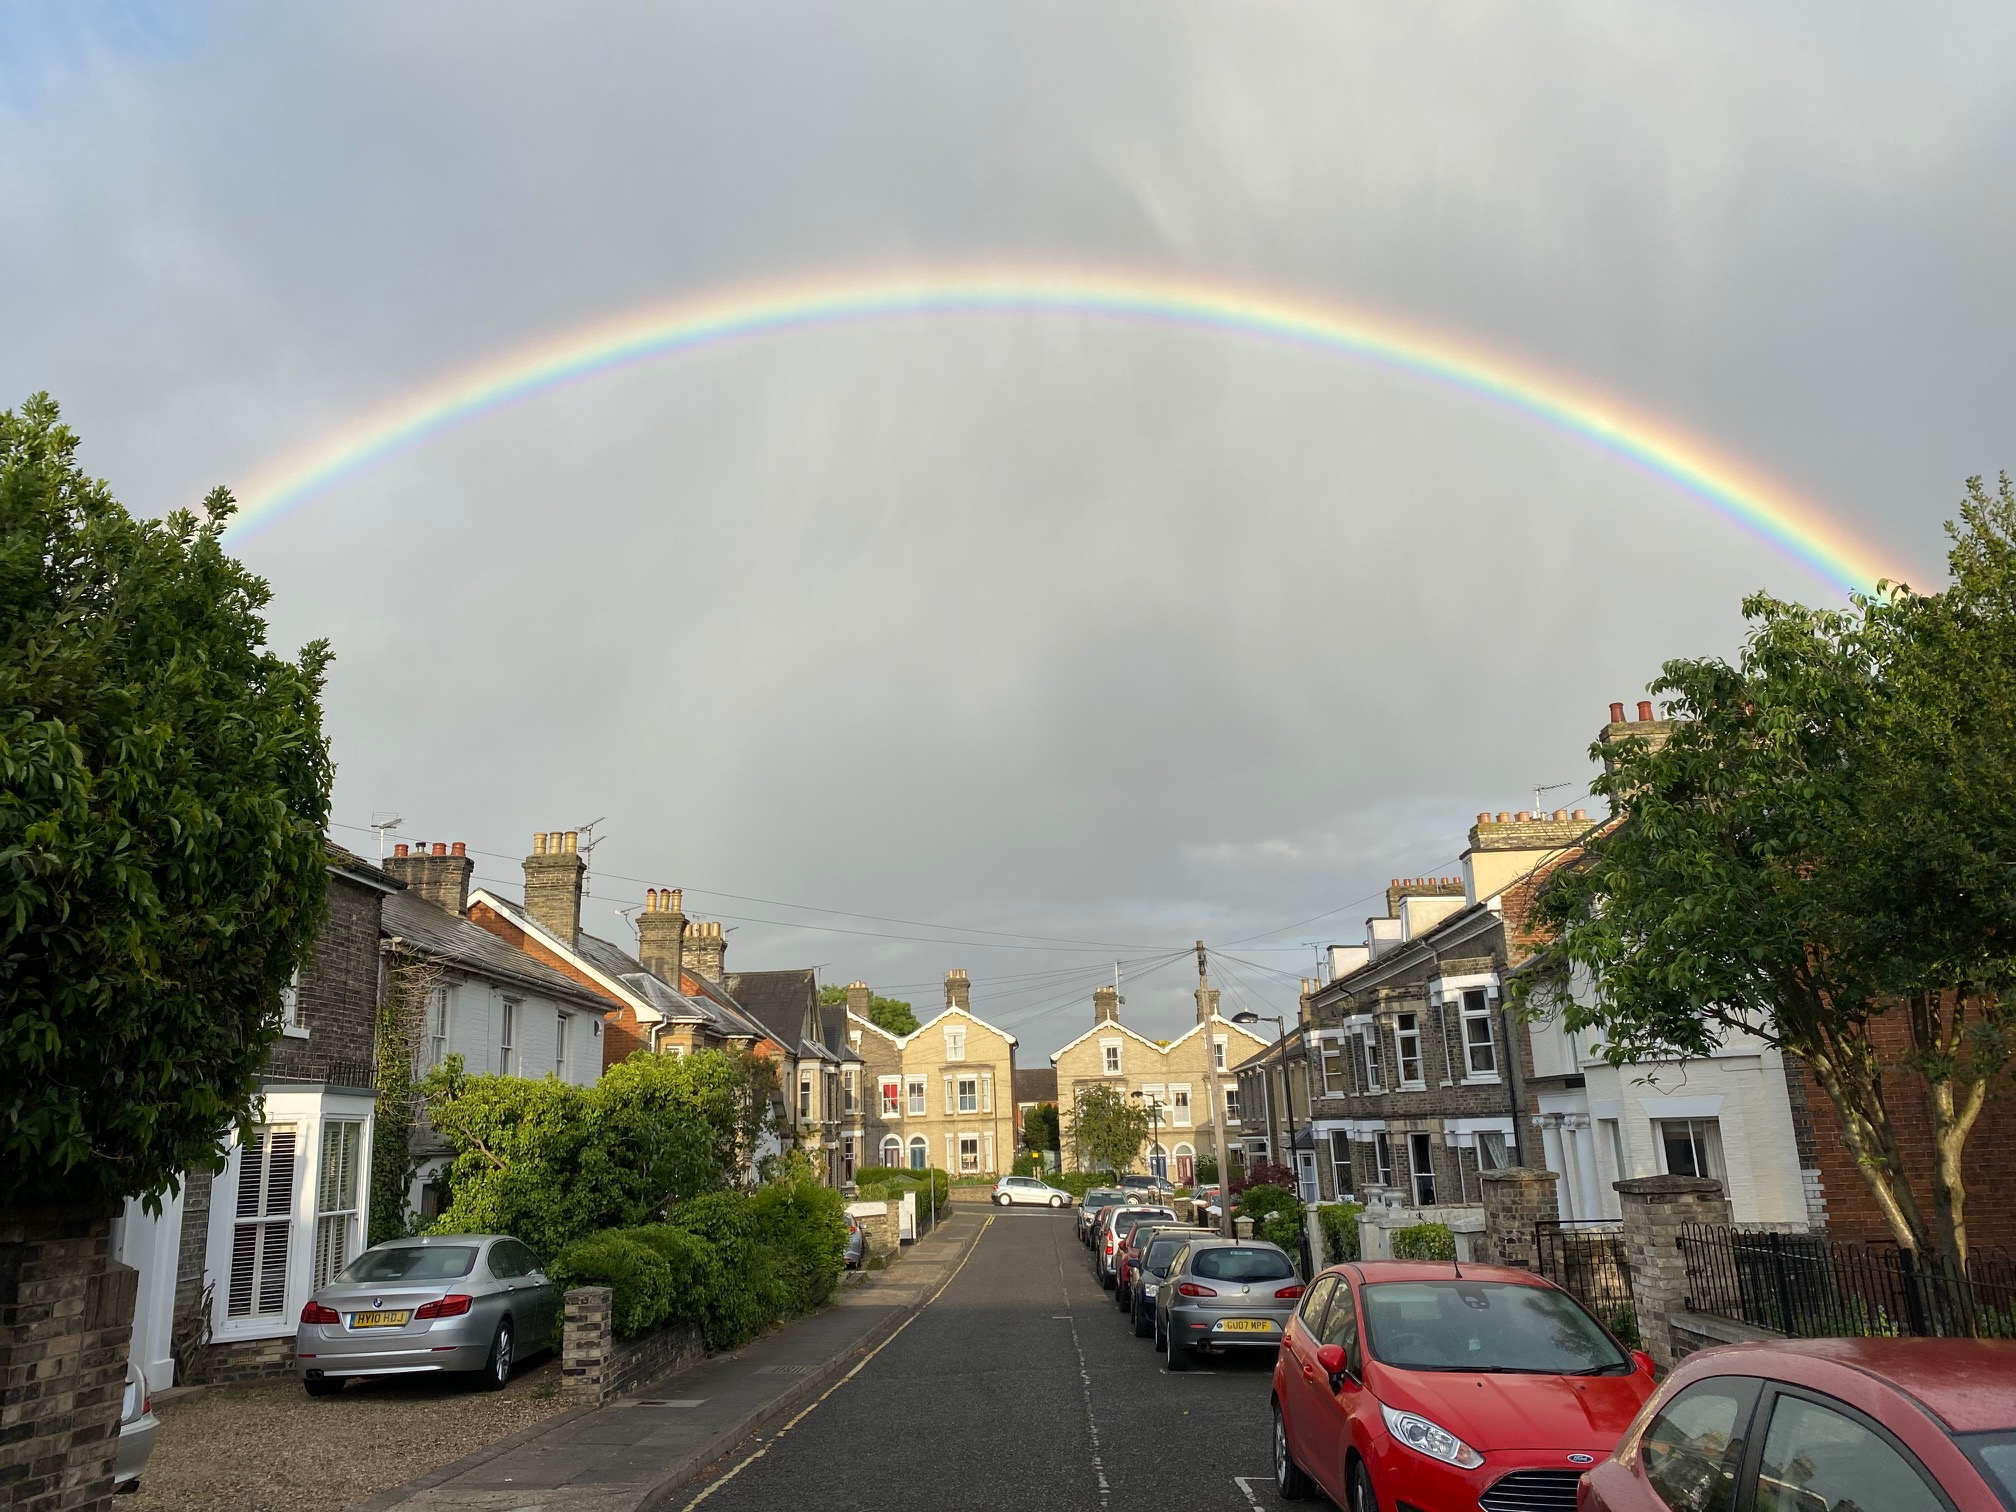 Rainbow in lockdown street - photographer Ollie Bevan-Thomas